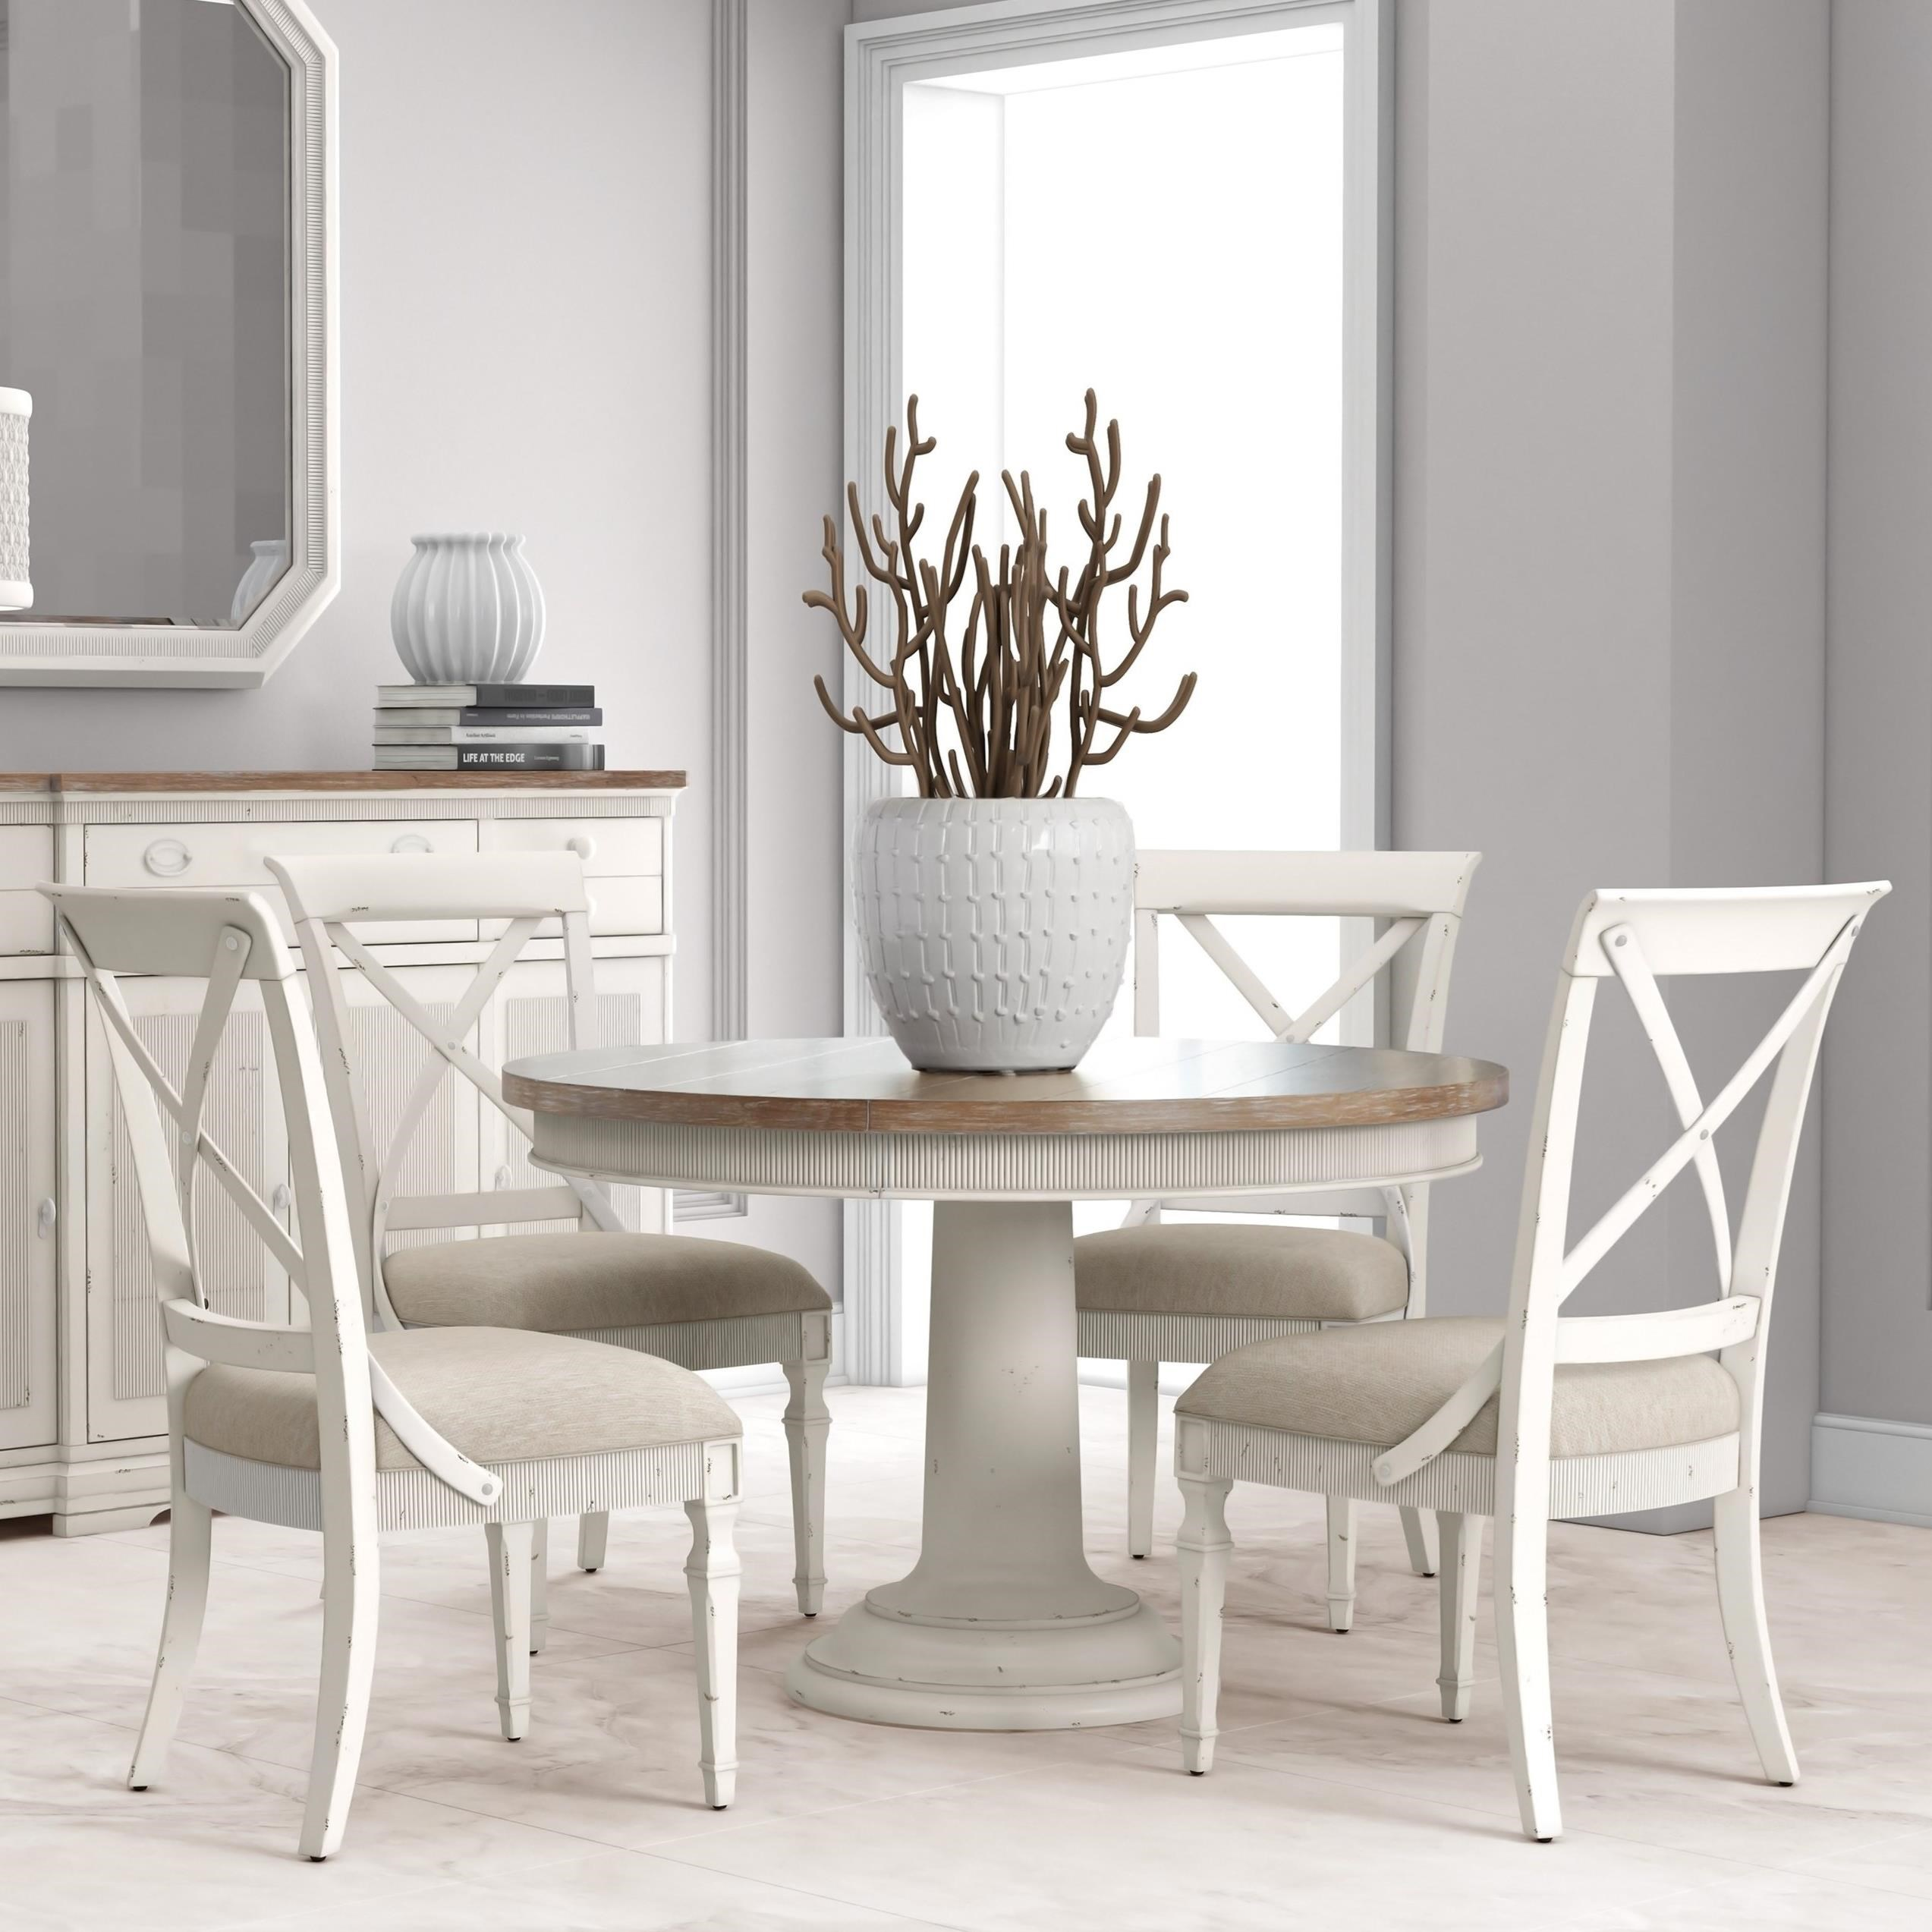 Palisade 5-Piece Round Dining Table Set by A.R.T. Furniture Inc at Baer's Furniture